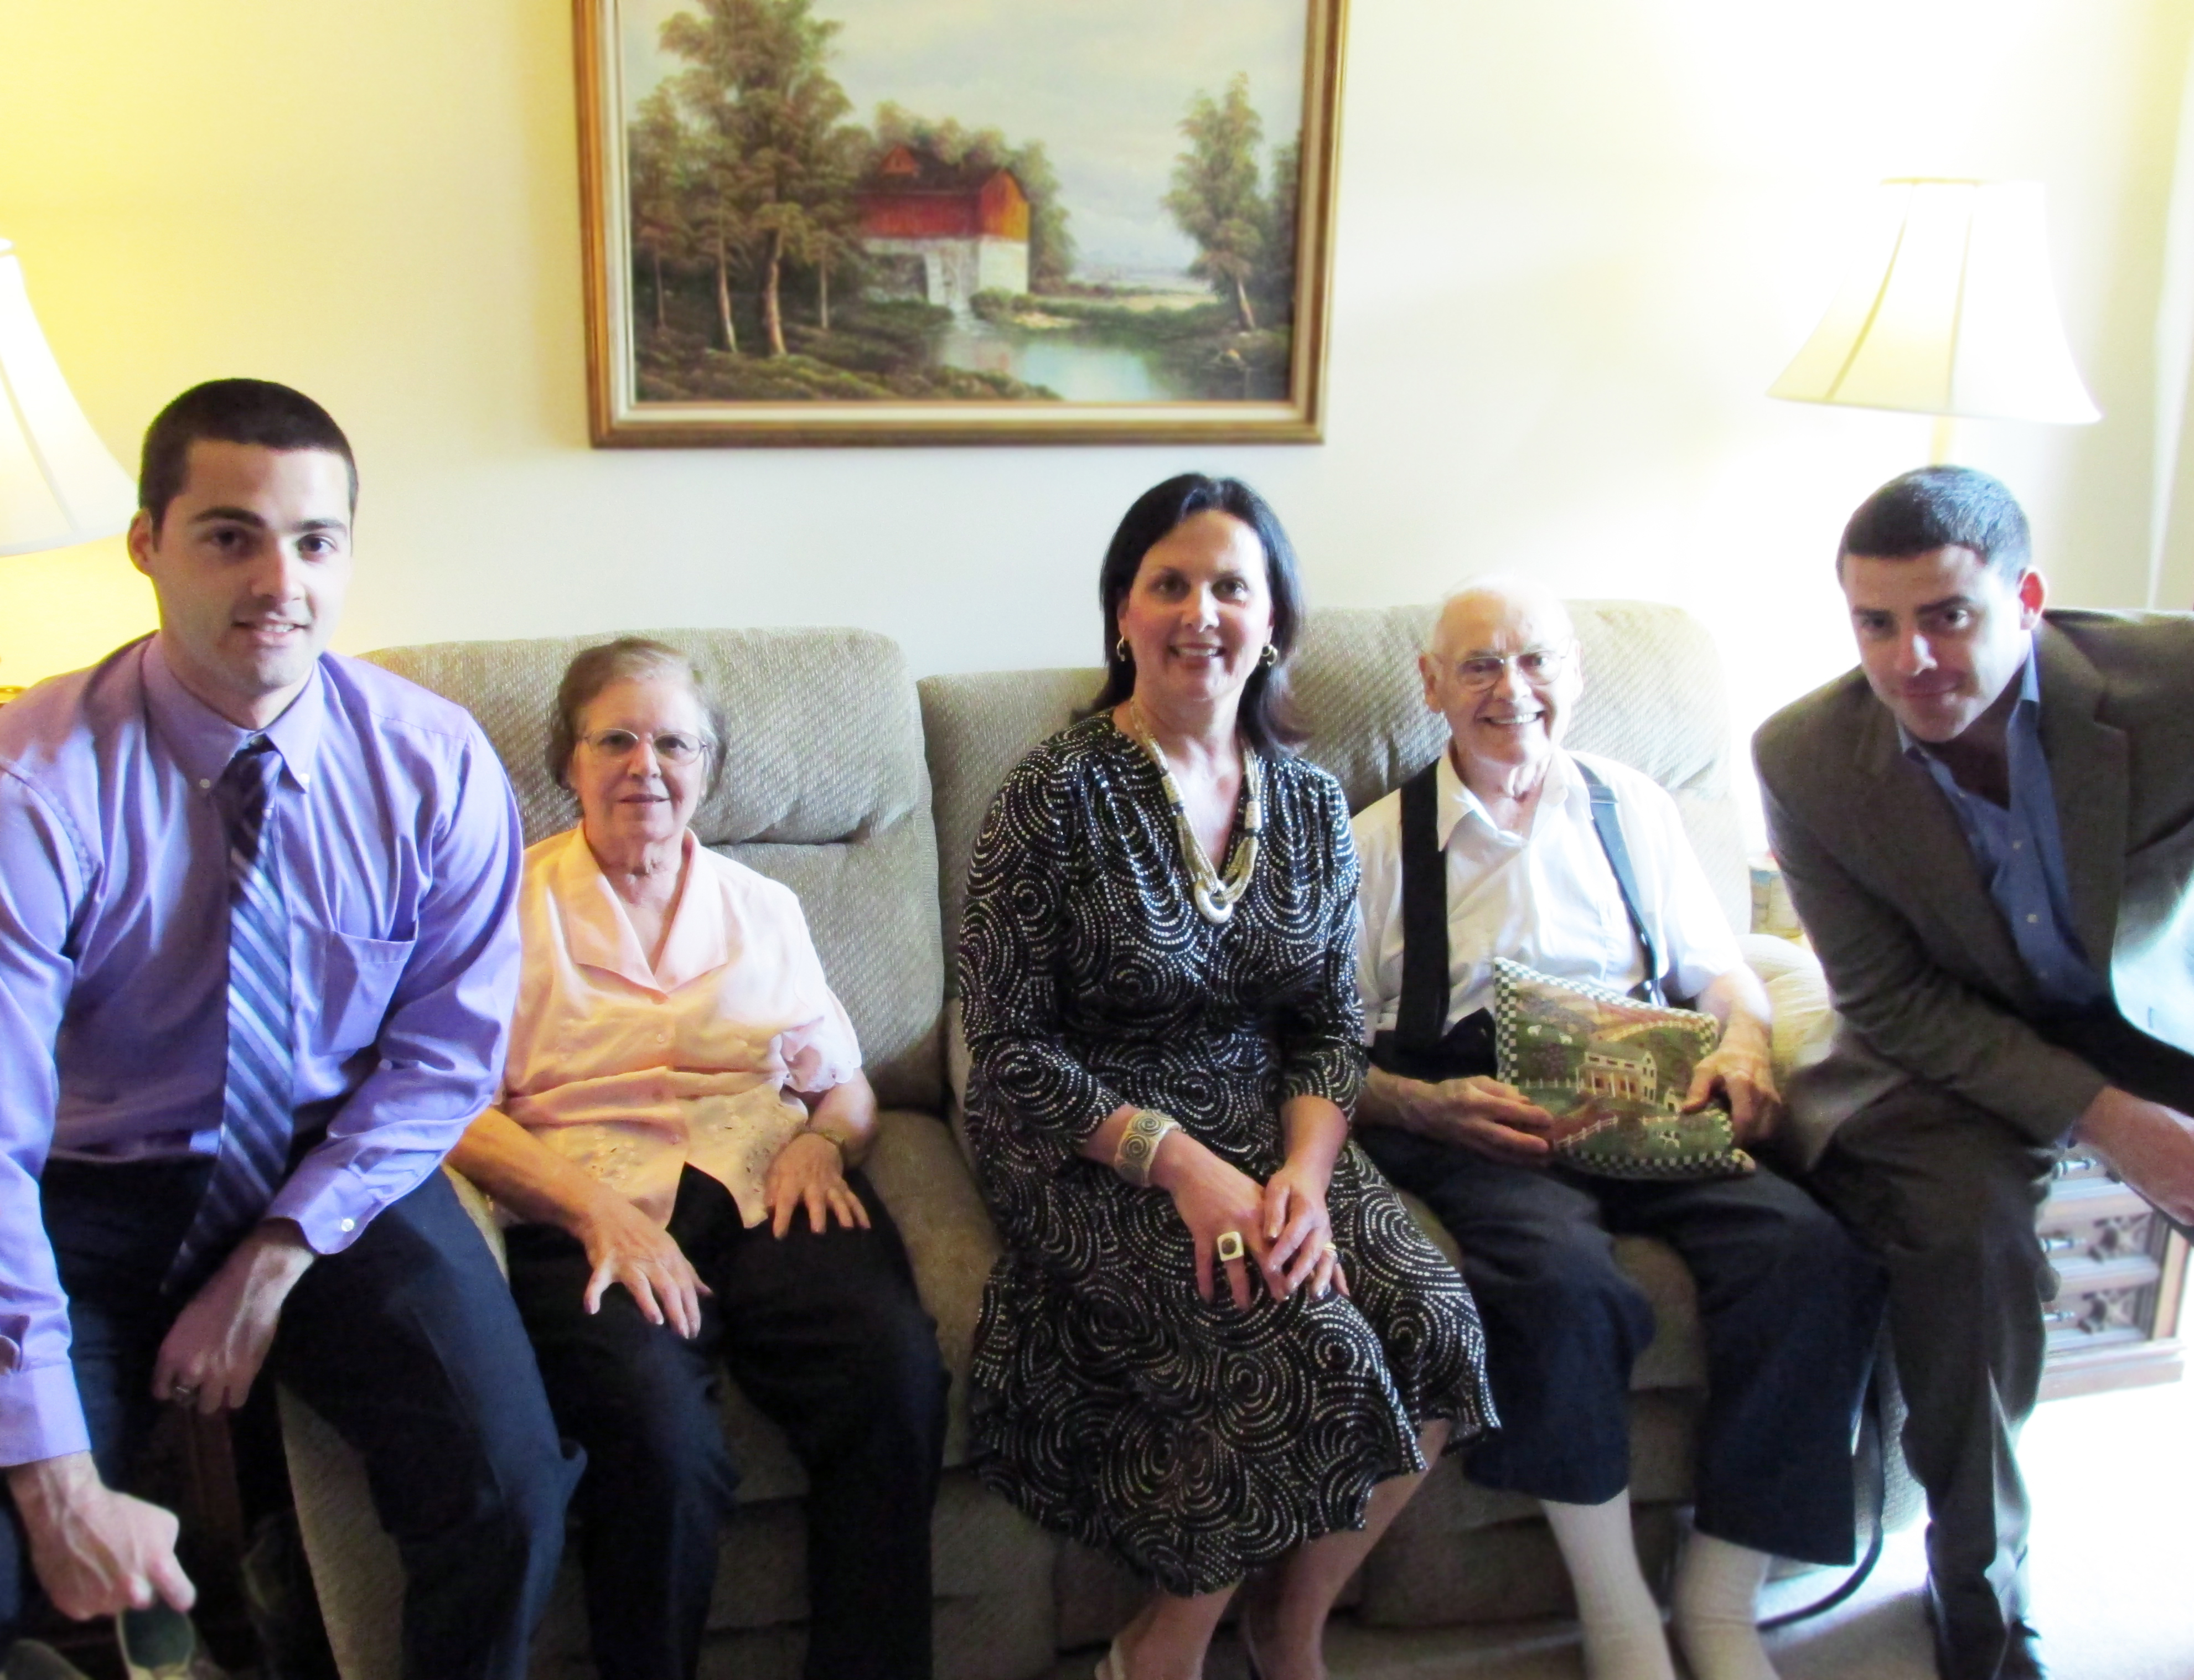 Author Liz Barker and Family